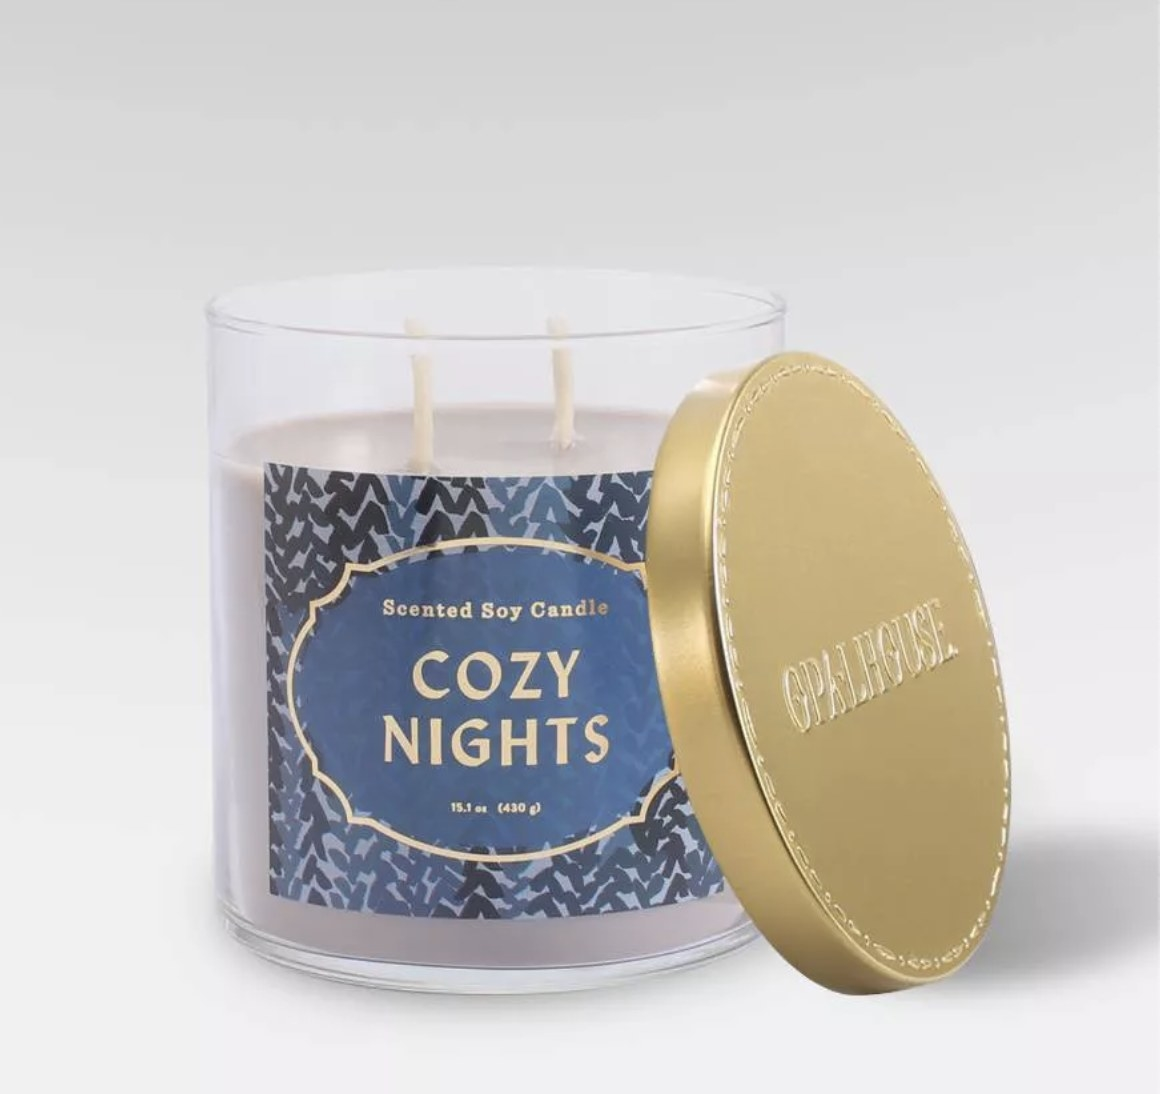 a lilac candle with a gold lid and two wicks. a navy and gold label on the glass jar